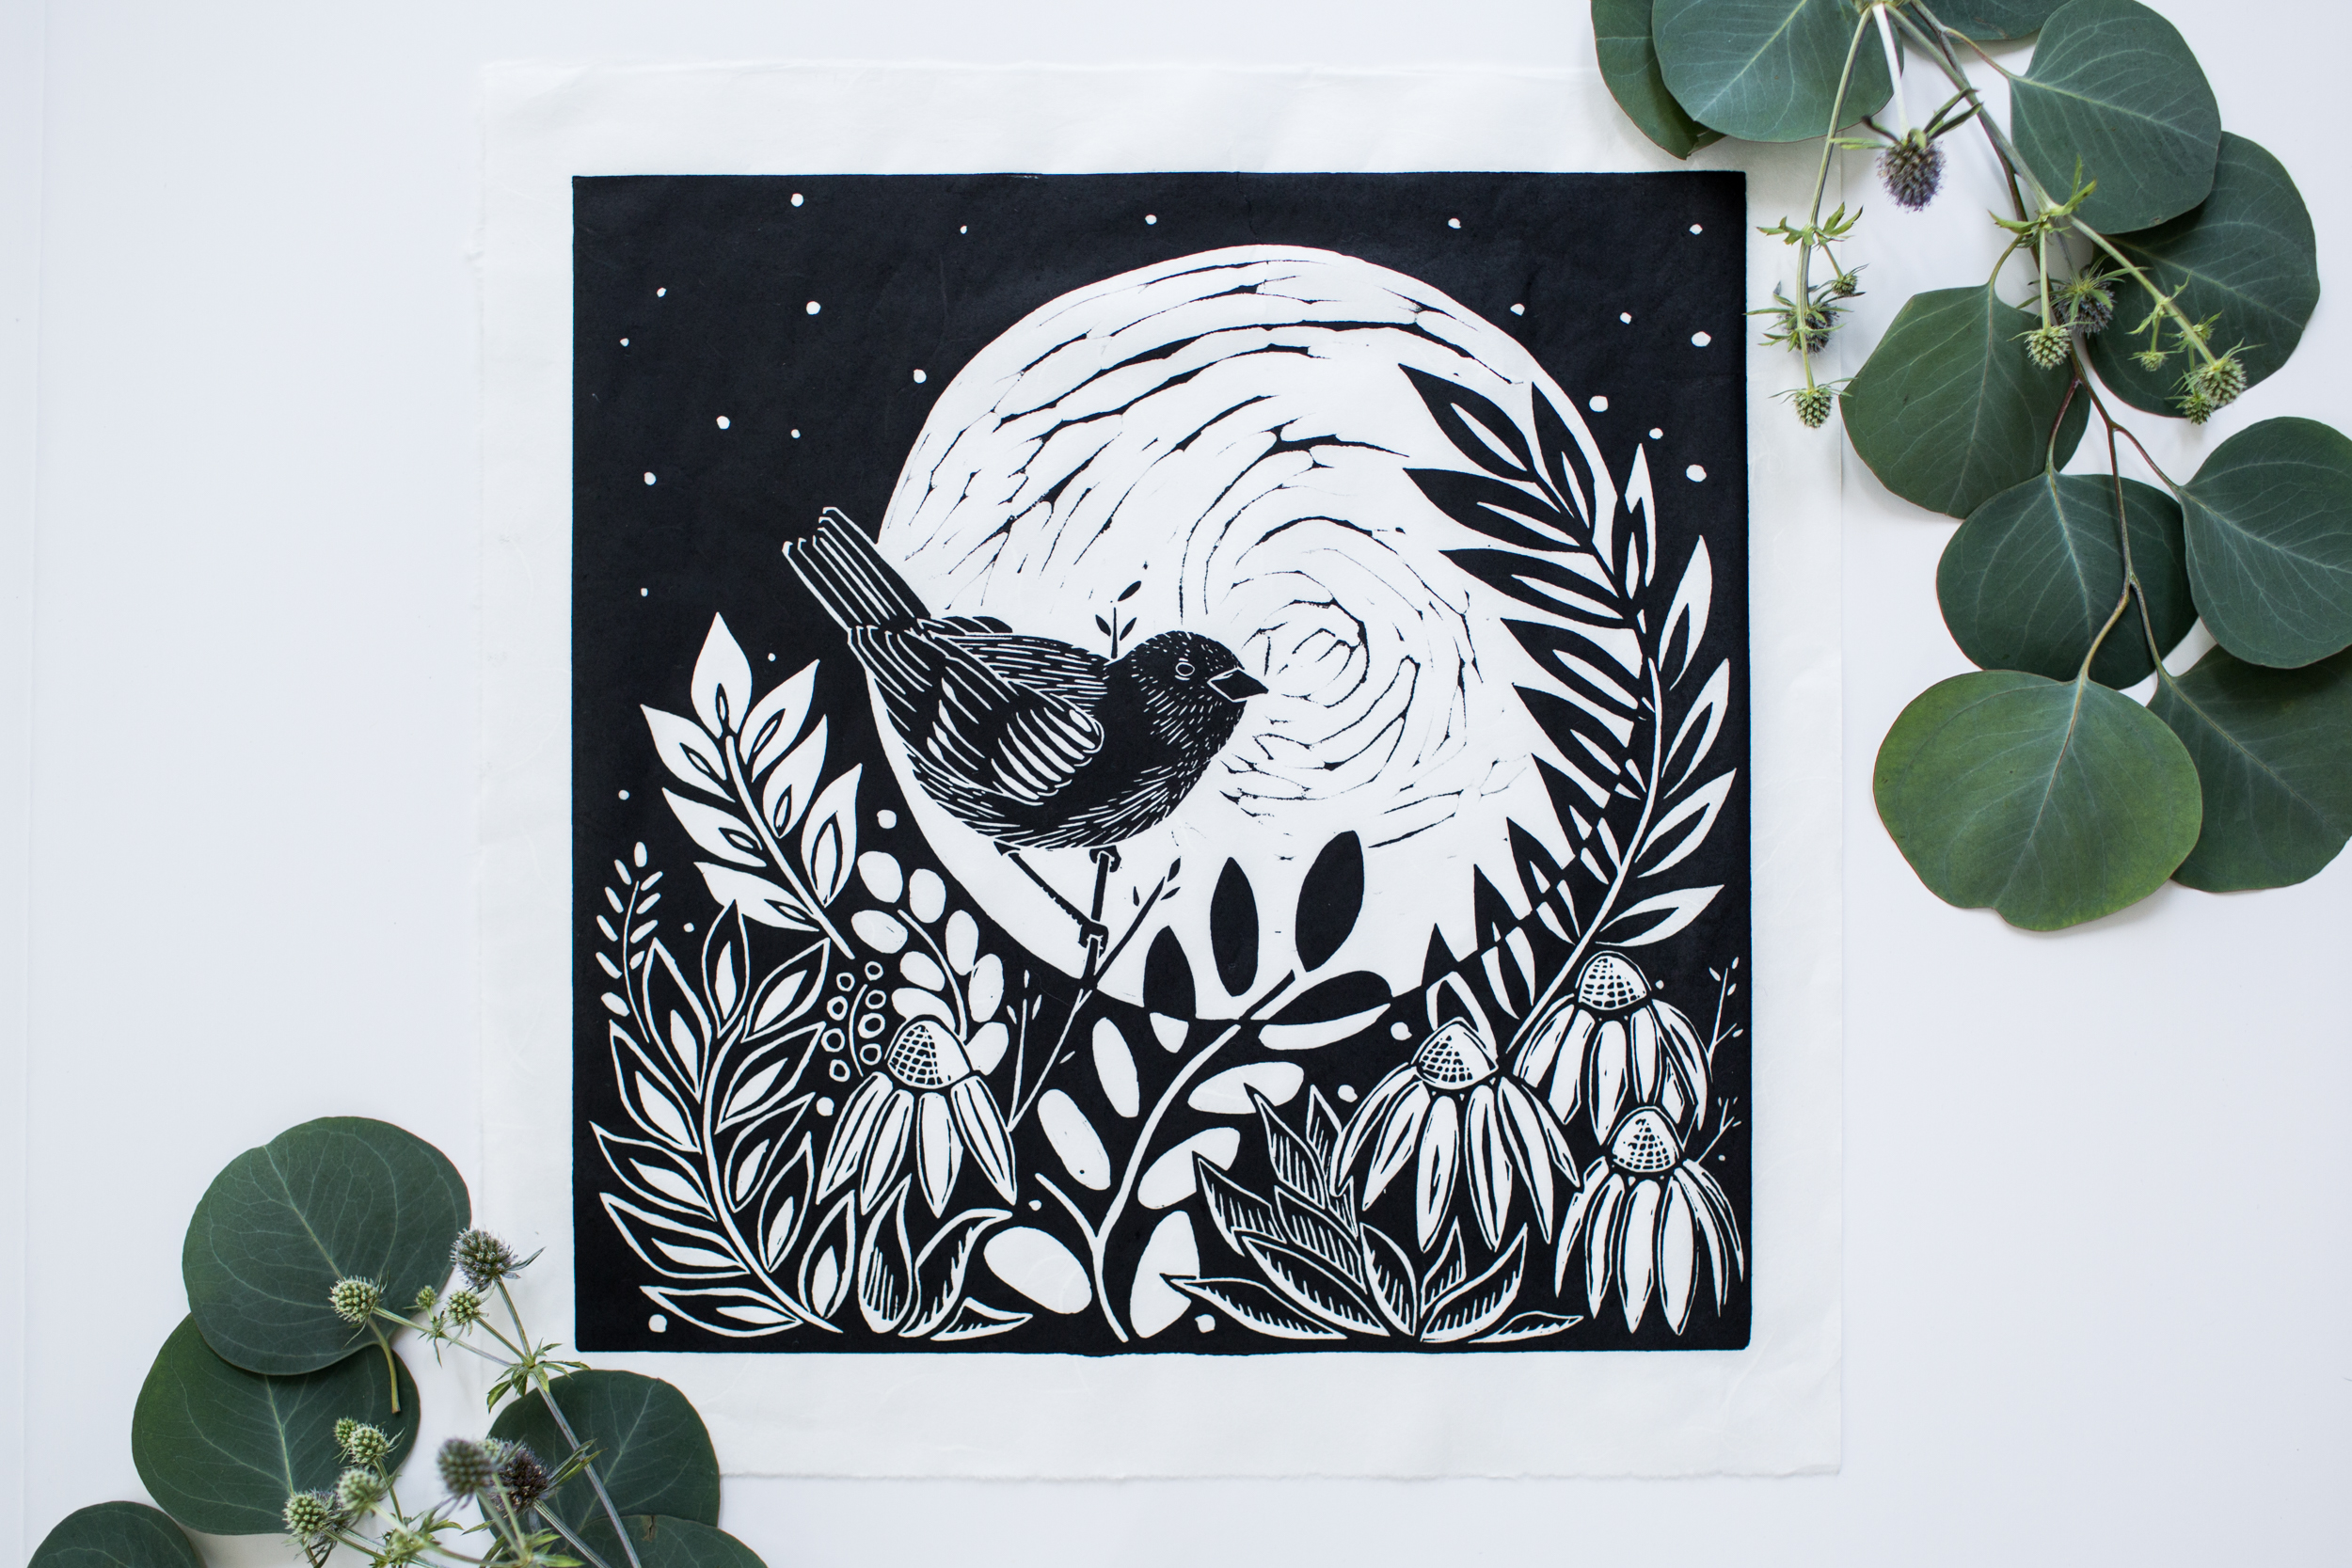 "The Warbler & The Moon, 12"" x 12"" Linocut on Unryu"